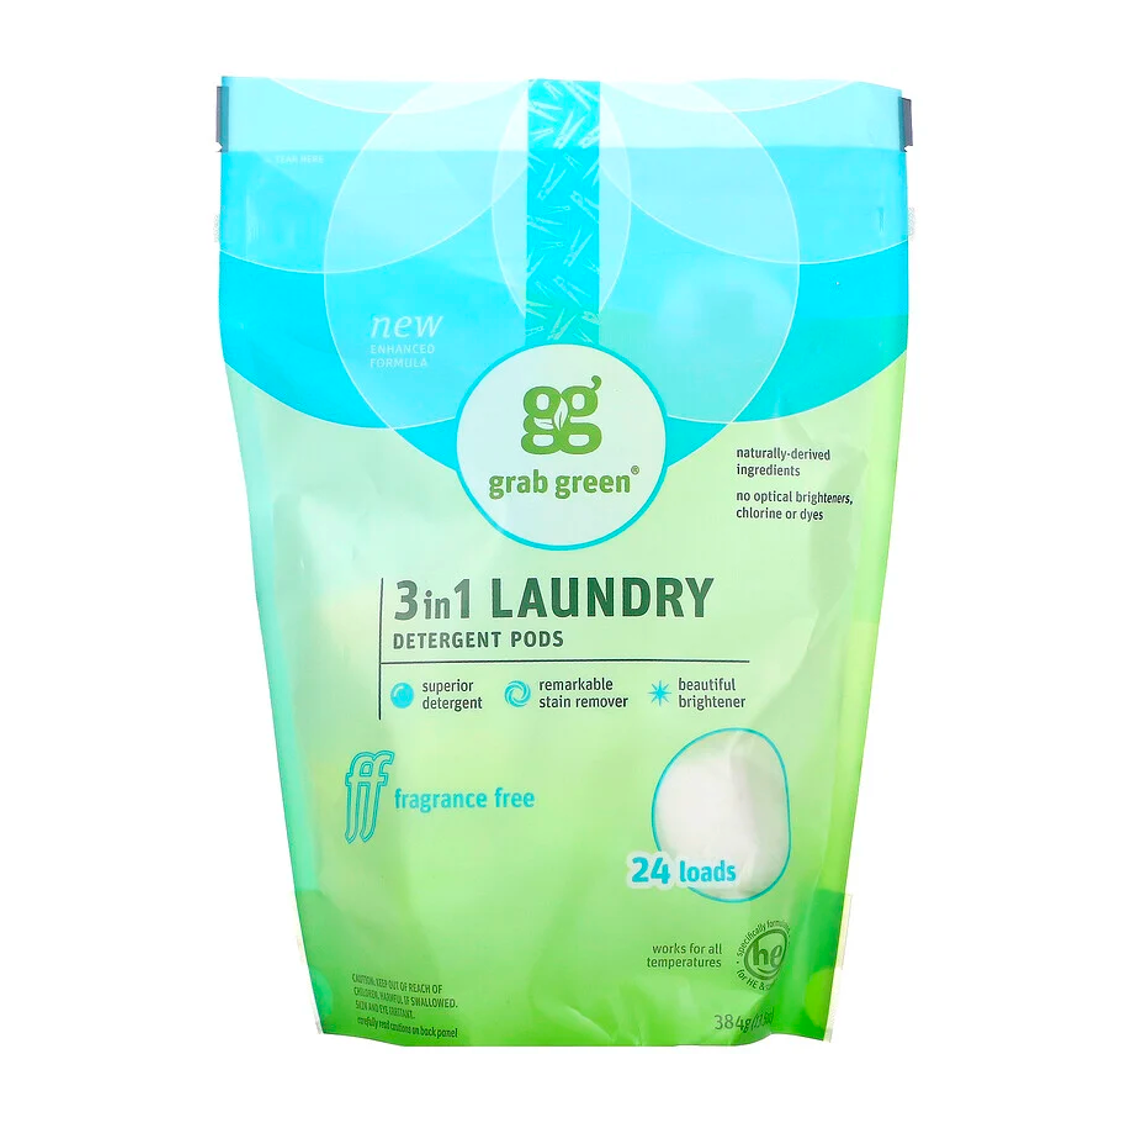 Grab Green 3 in 1 Laundry Detergent Pods - Fragrance Free (24 Loads)